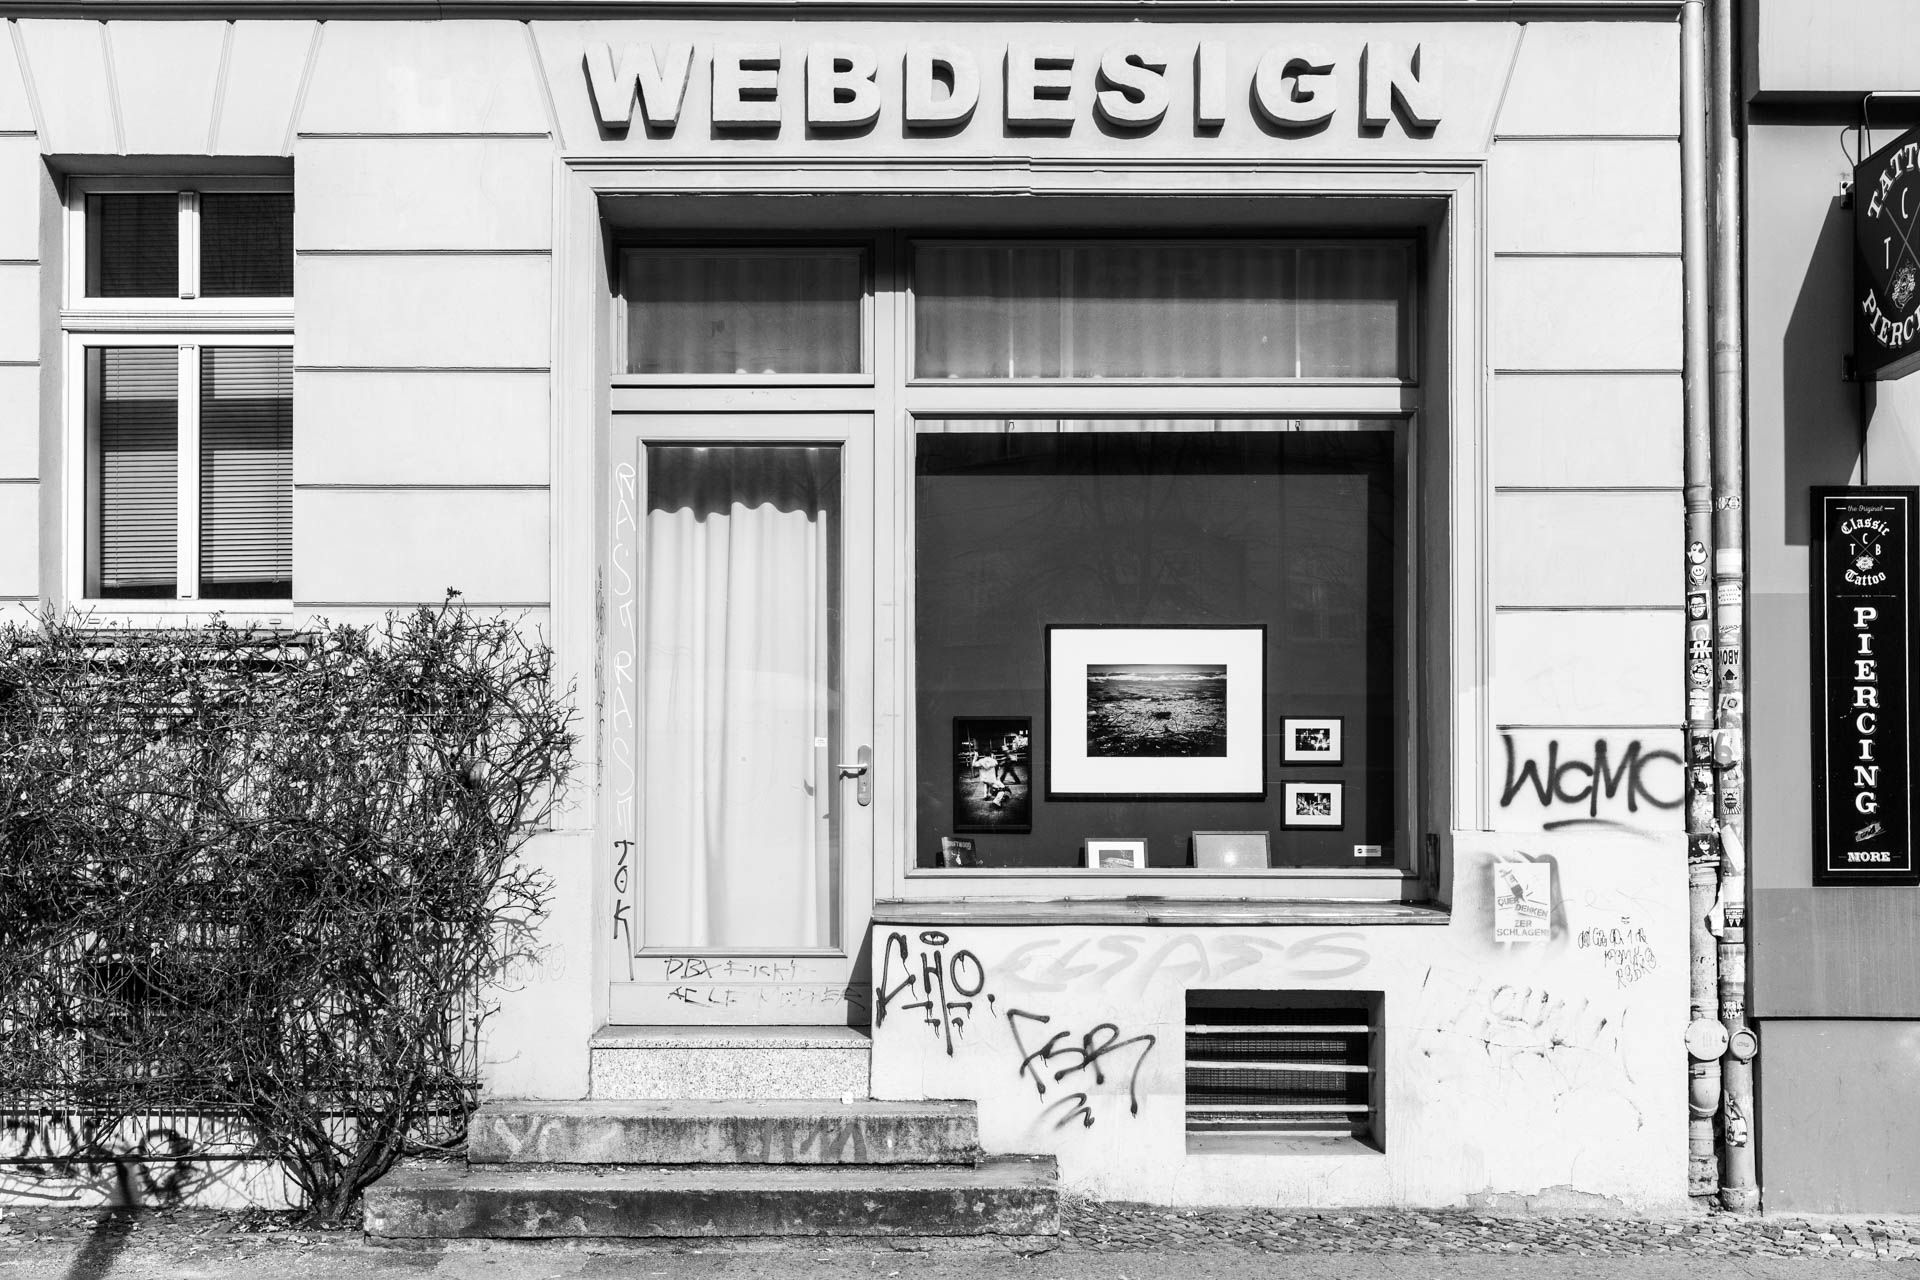 Photography in the window at Torstraße 61